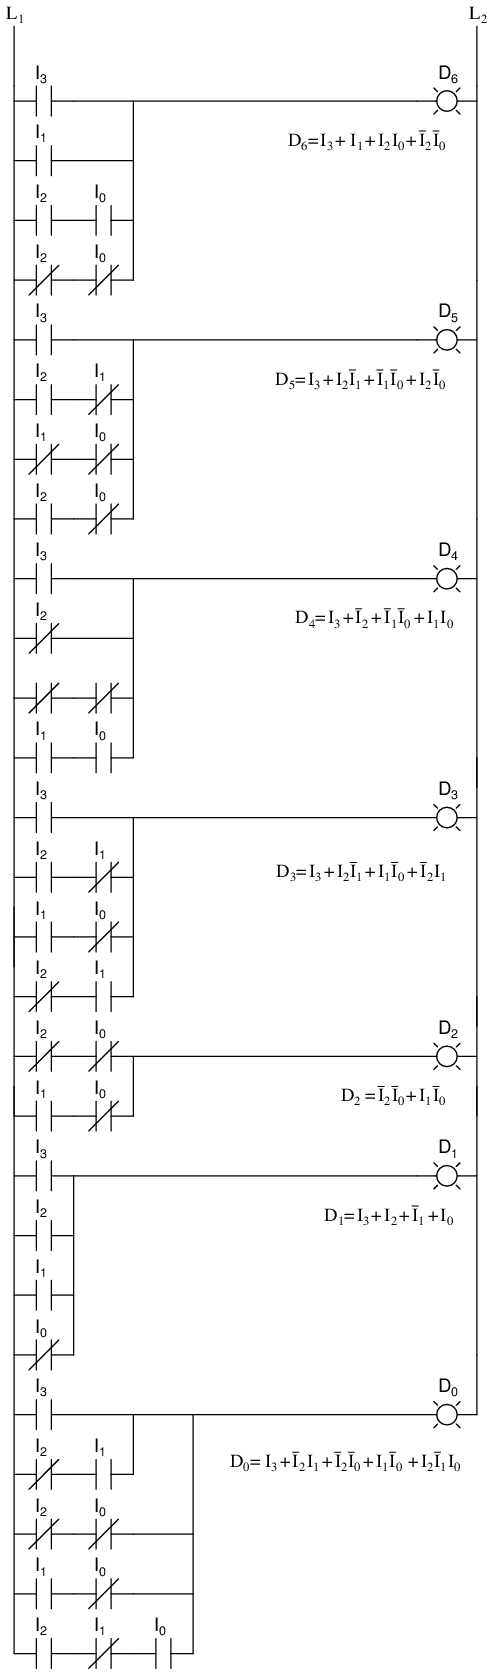 Is An And Gate Circuit And It Can Be Made Quite Easily The Example